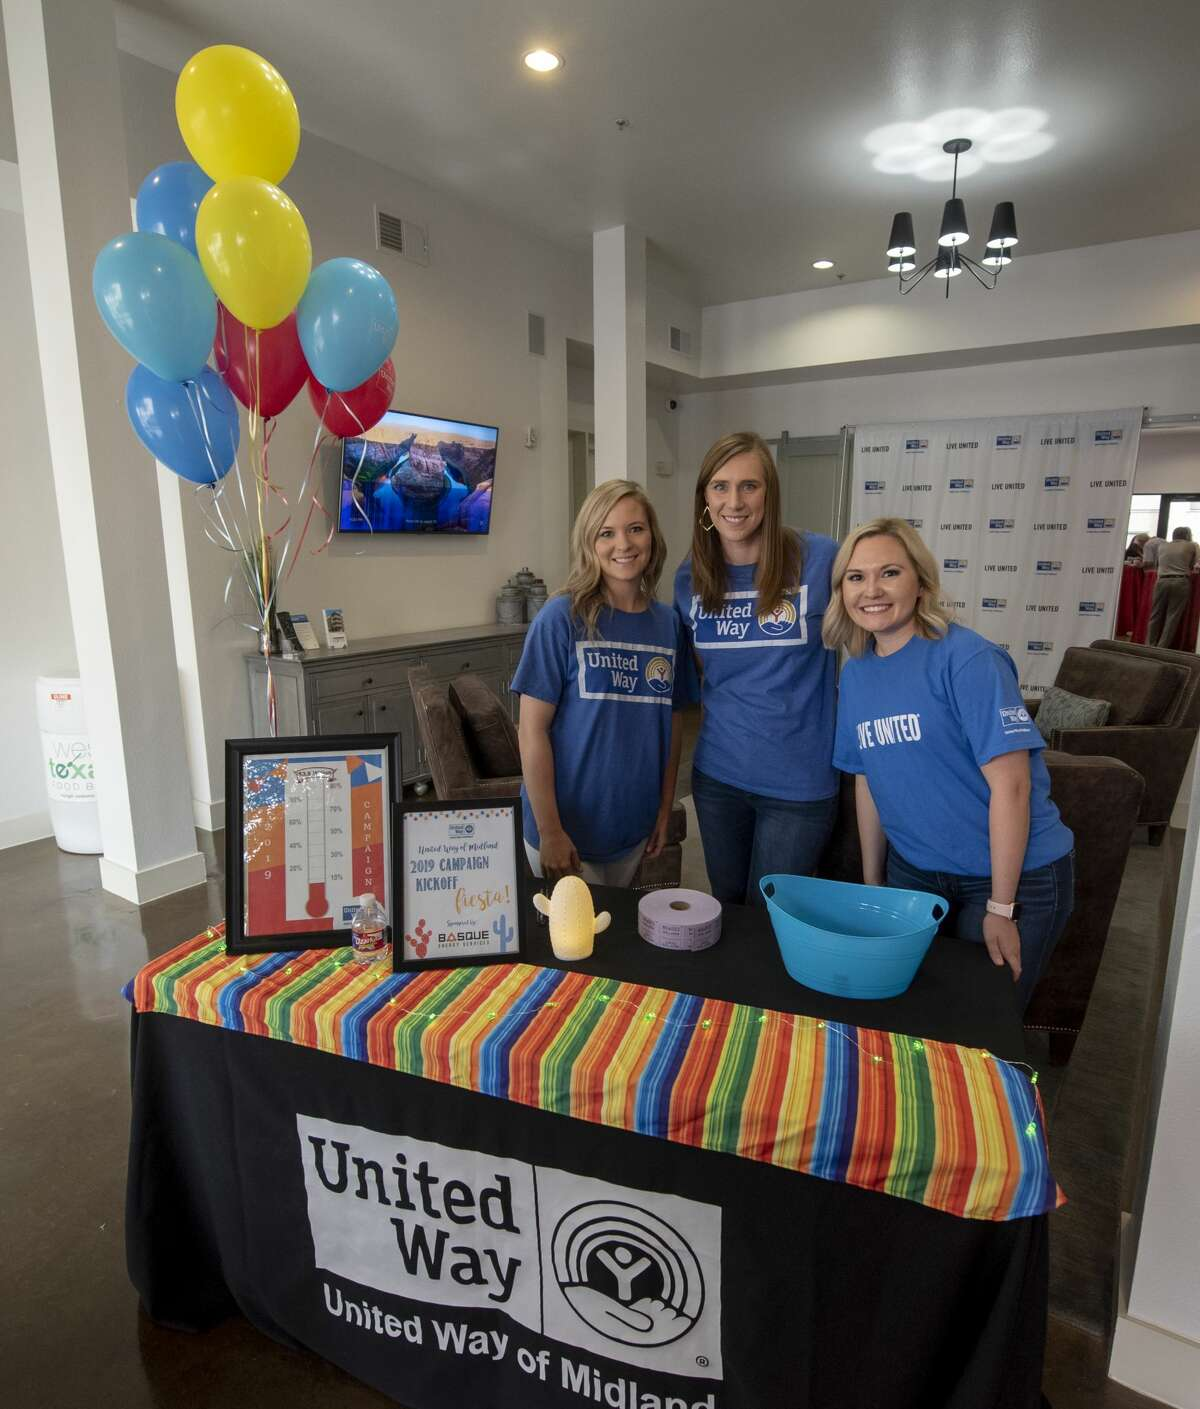 The United Way of Midland held its 2019 campaign kickoff Thursday, August 22, 2019, at the Wall Street Lofts.